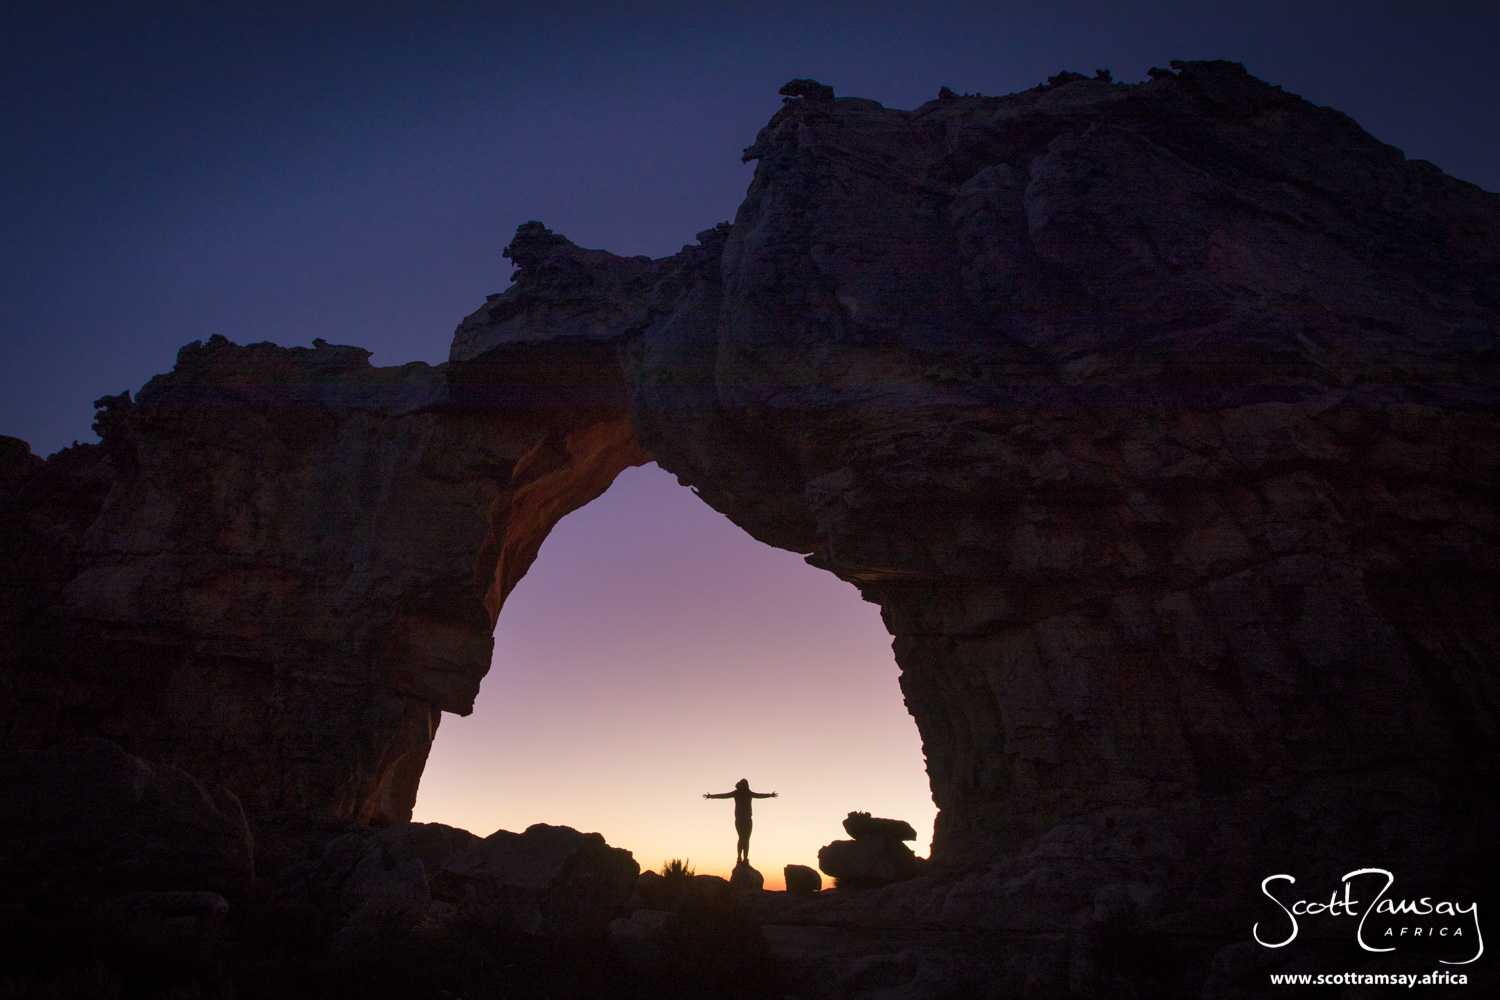 My friend Pippa Ehrlich greeting the numinous dawn at the Wolfberg Arch.